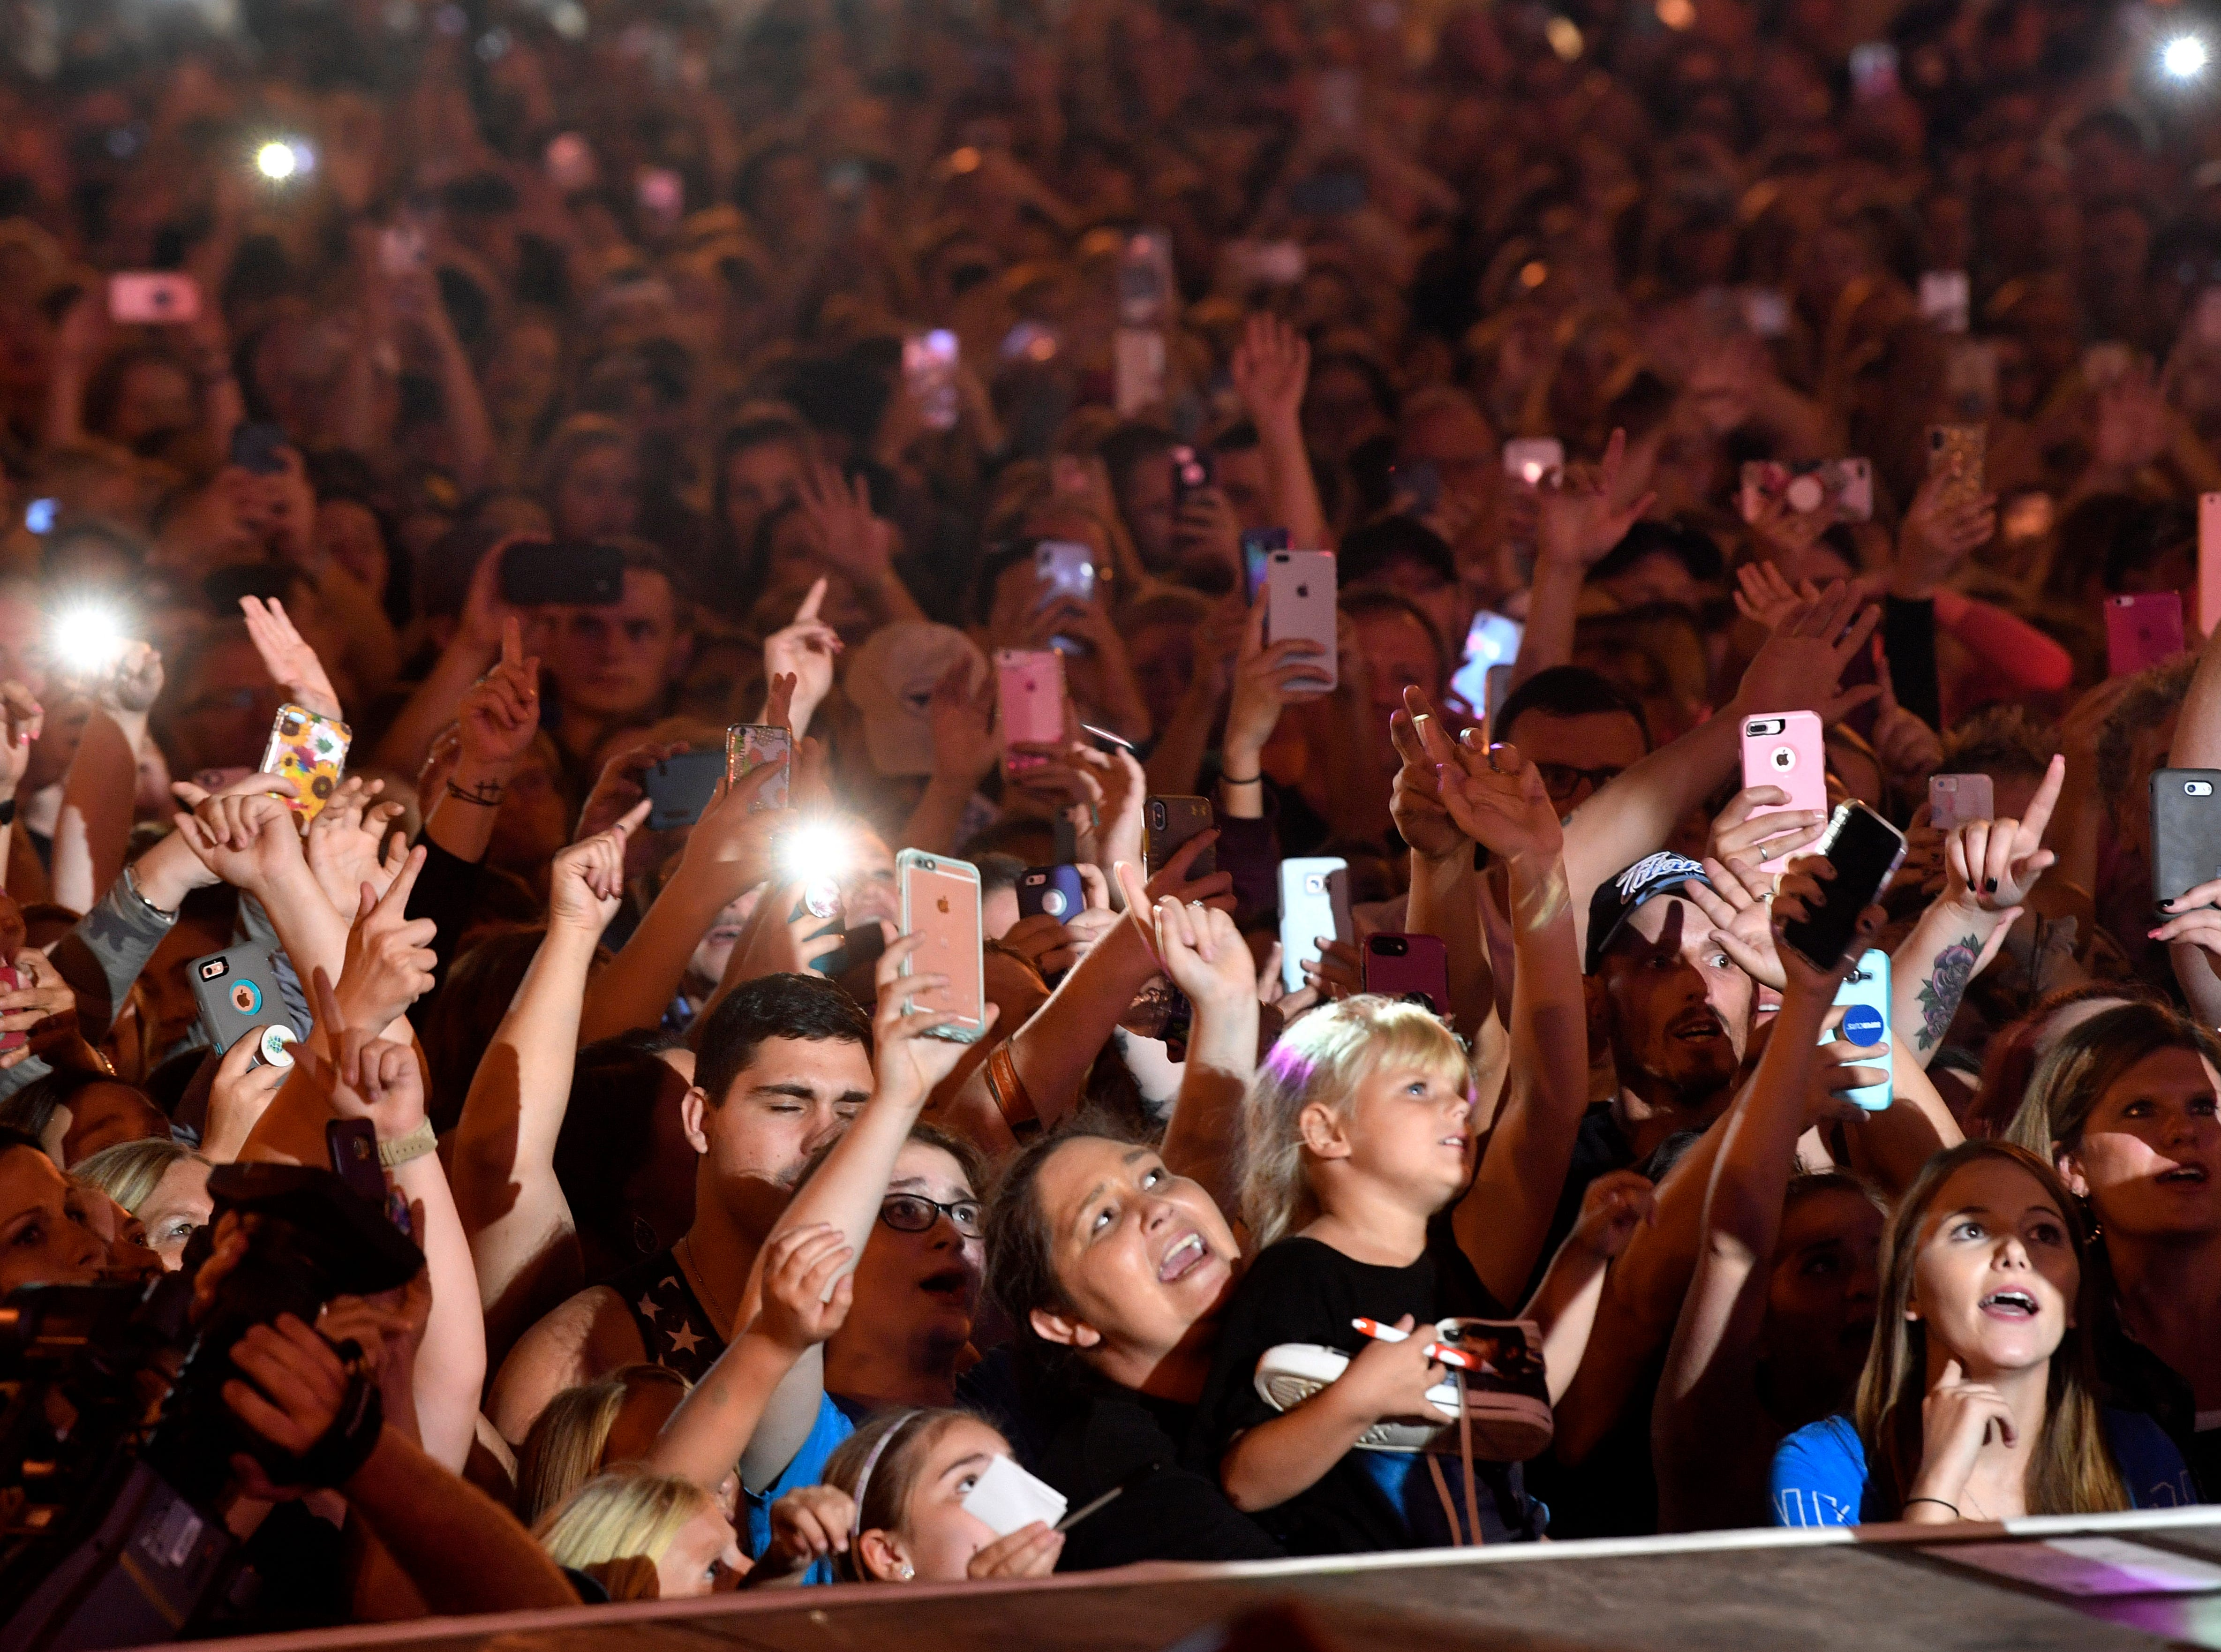 Fans get excited as Luke Bryan performs a concert for fans in front of his new bar Luke's 32 Bridge at 3rd and Broadway Monday Sept. 10, 2018, in Nashville, Tenn.